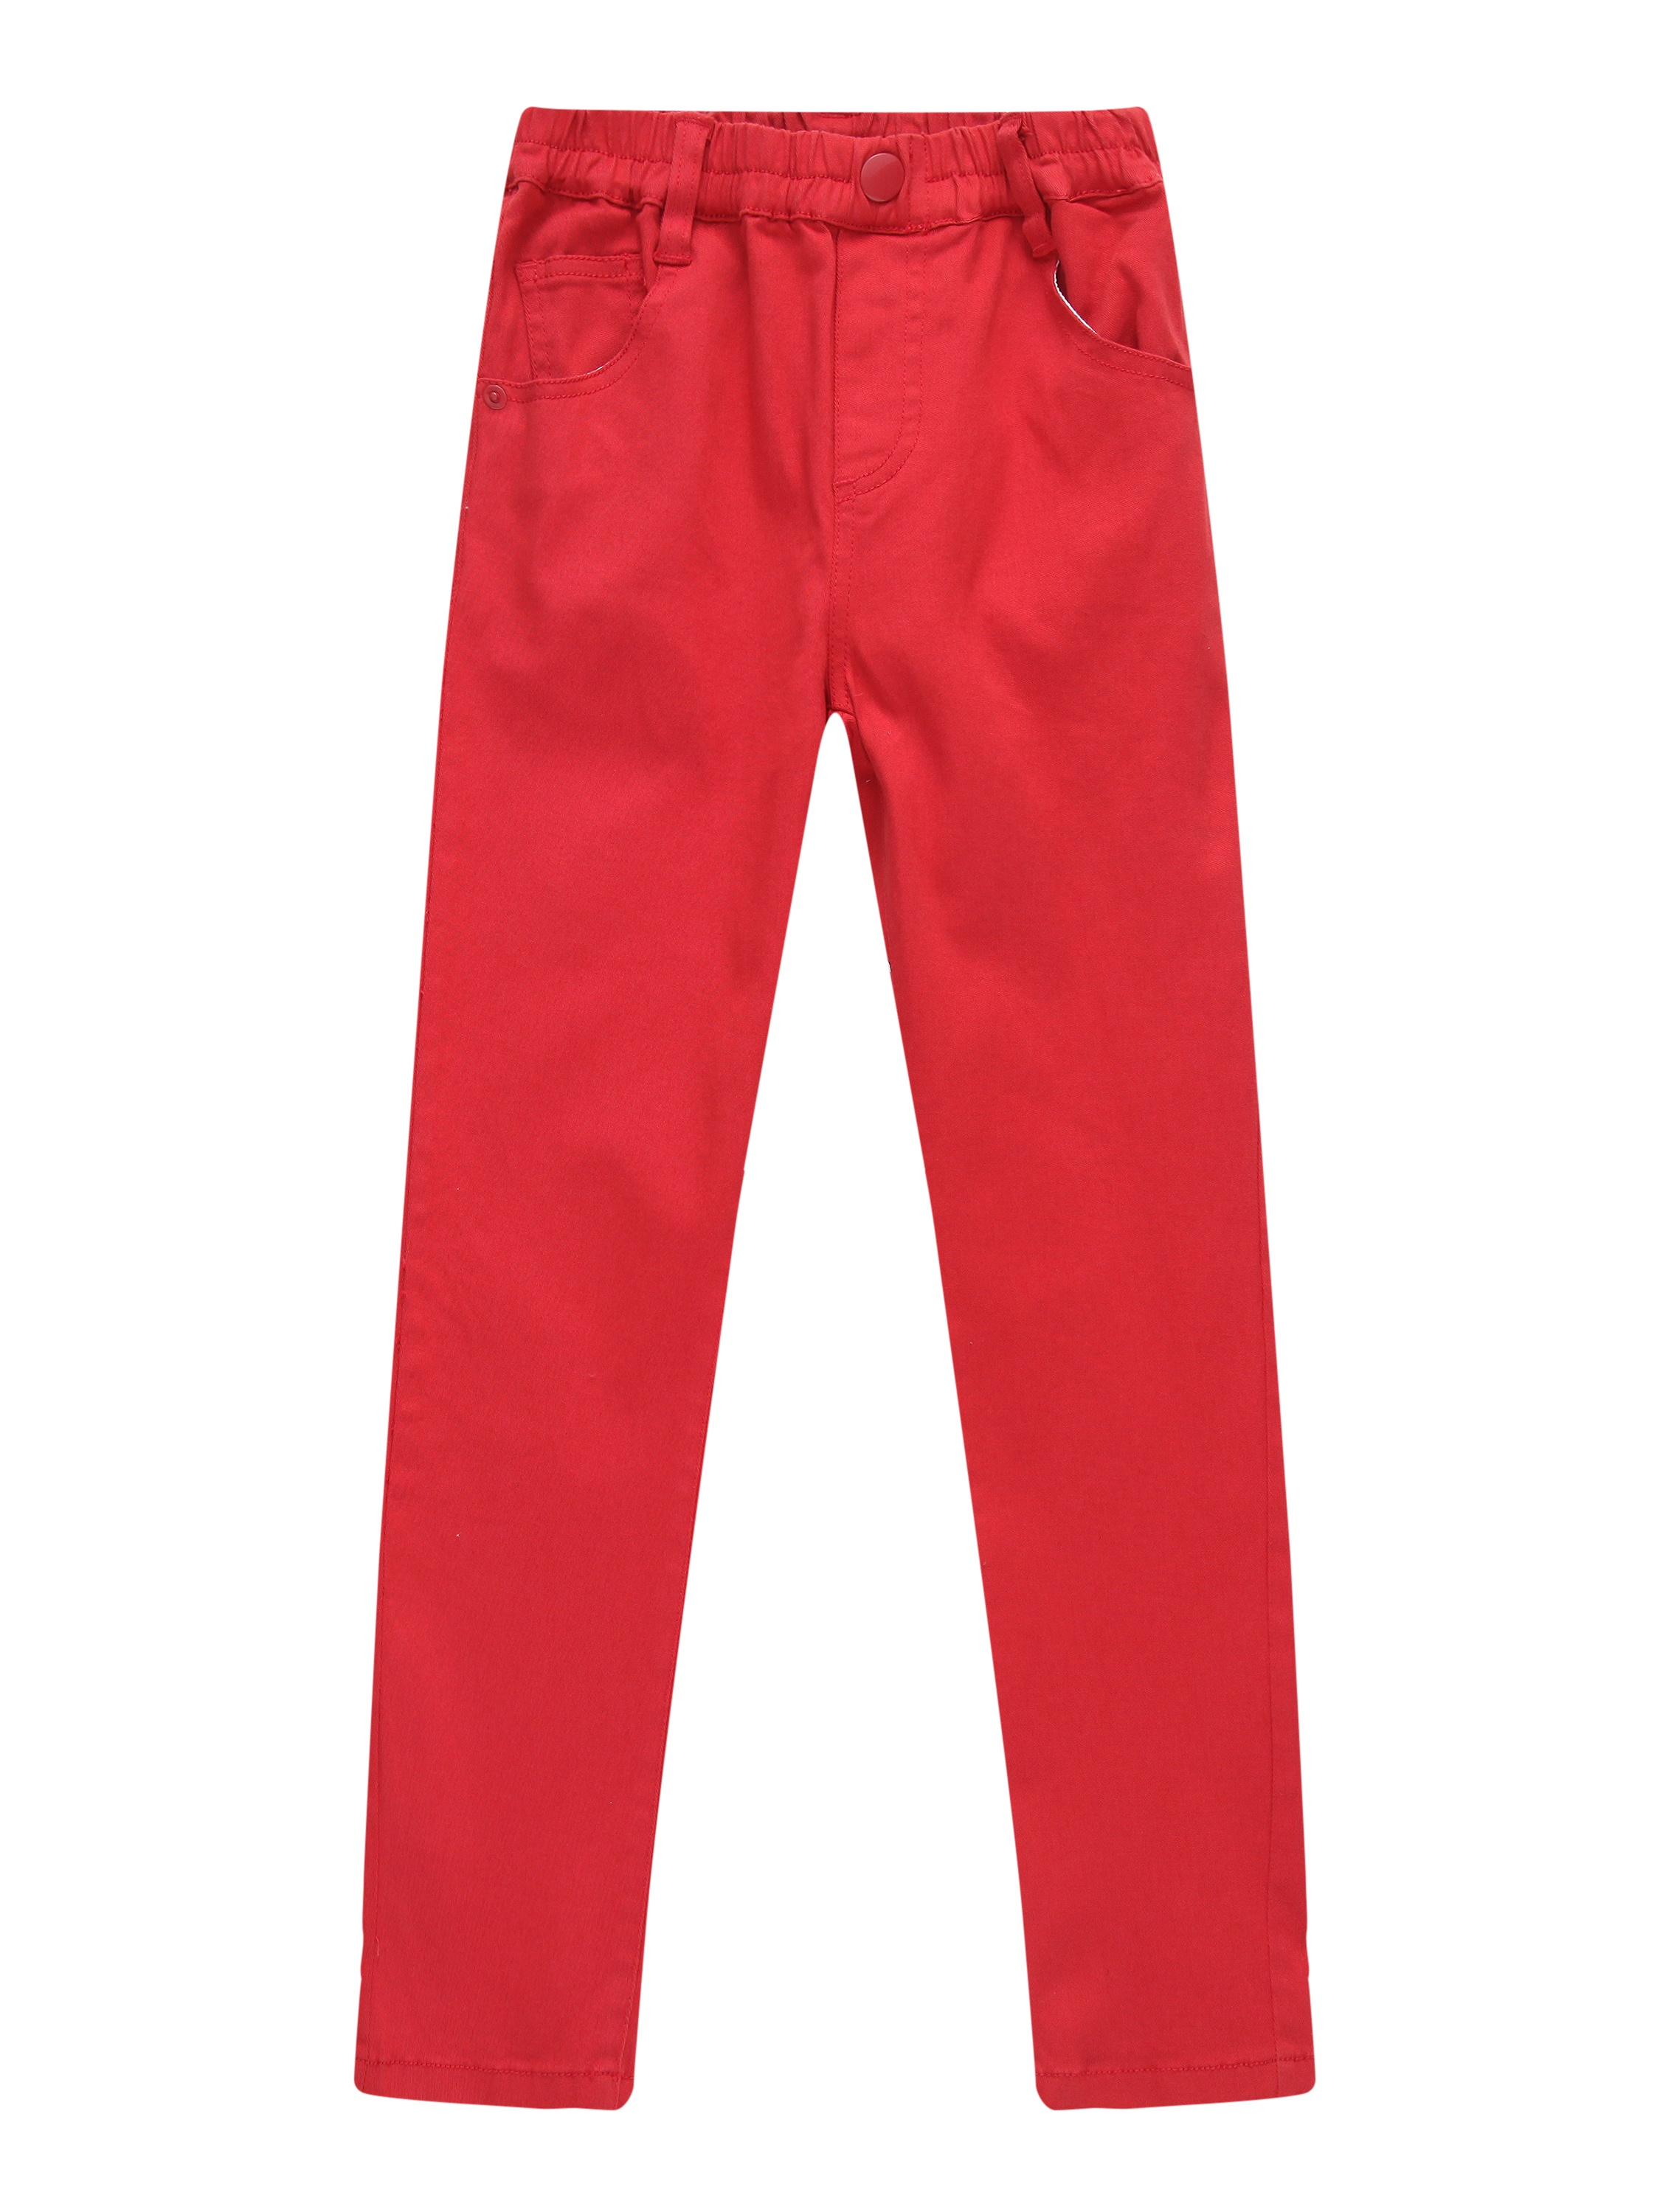 Richie House Girls' Leisure Pants with Elastic Waistband RH2239